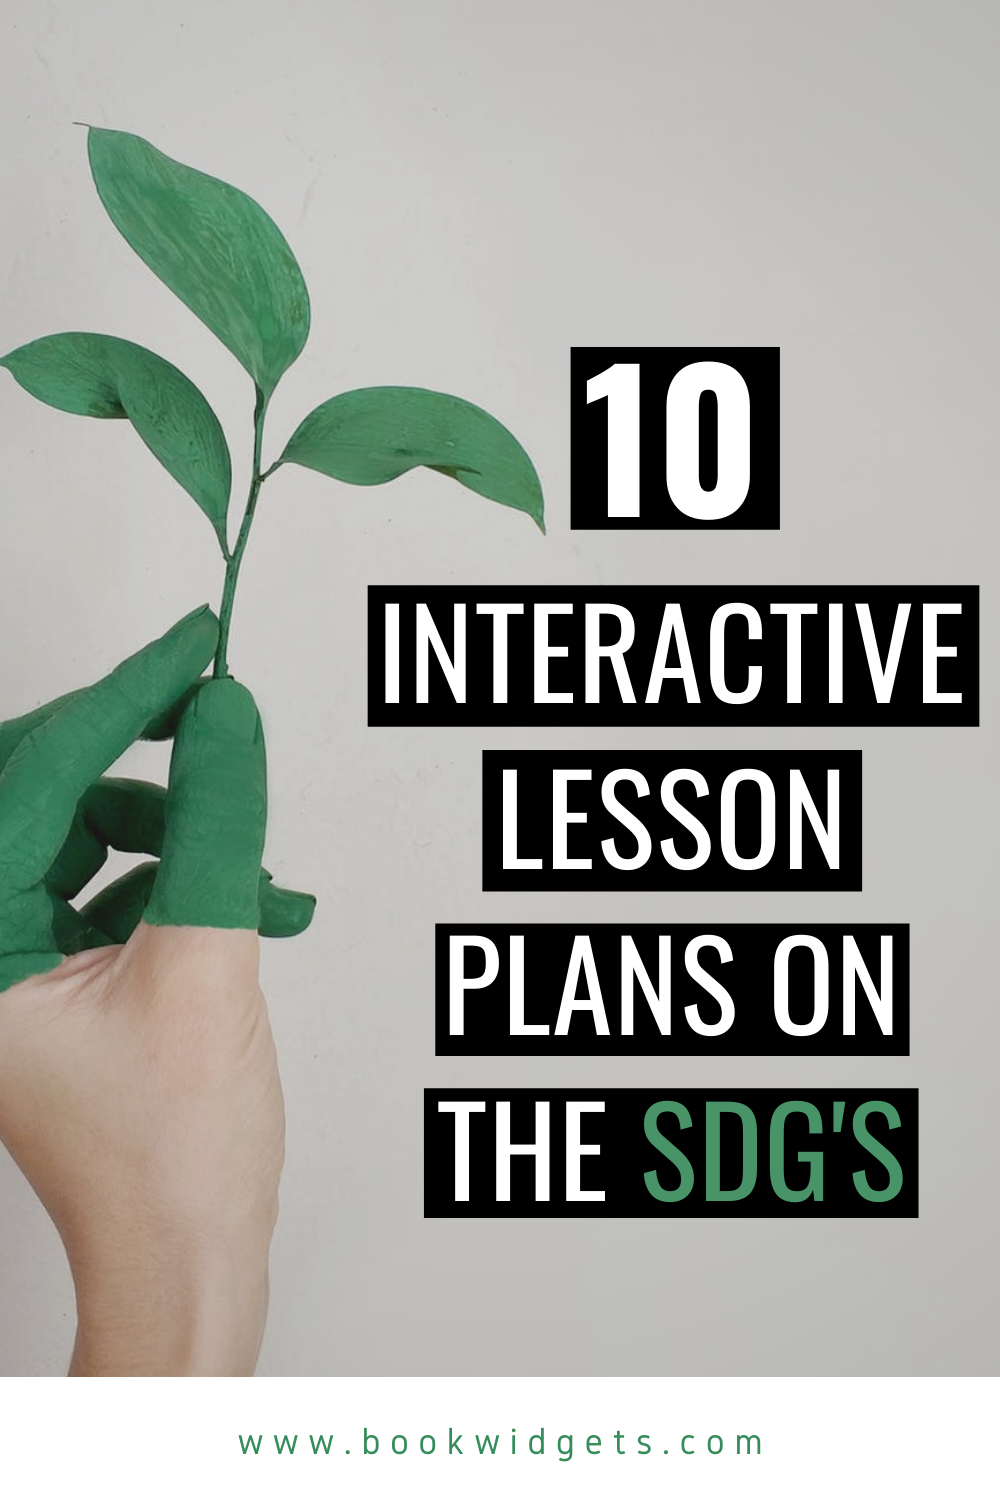 ready-to-use lesson plans on SDG's